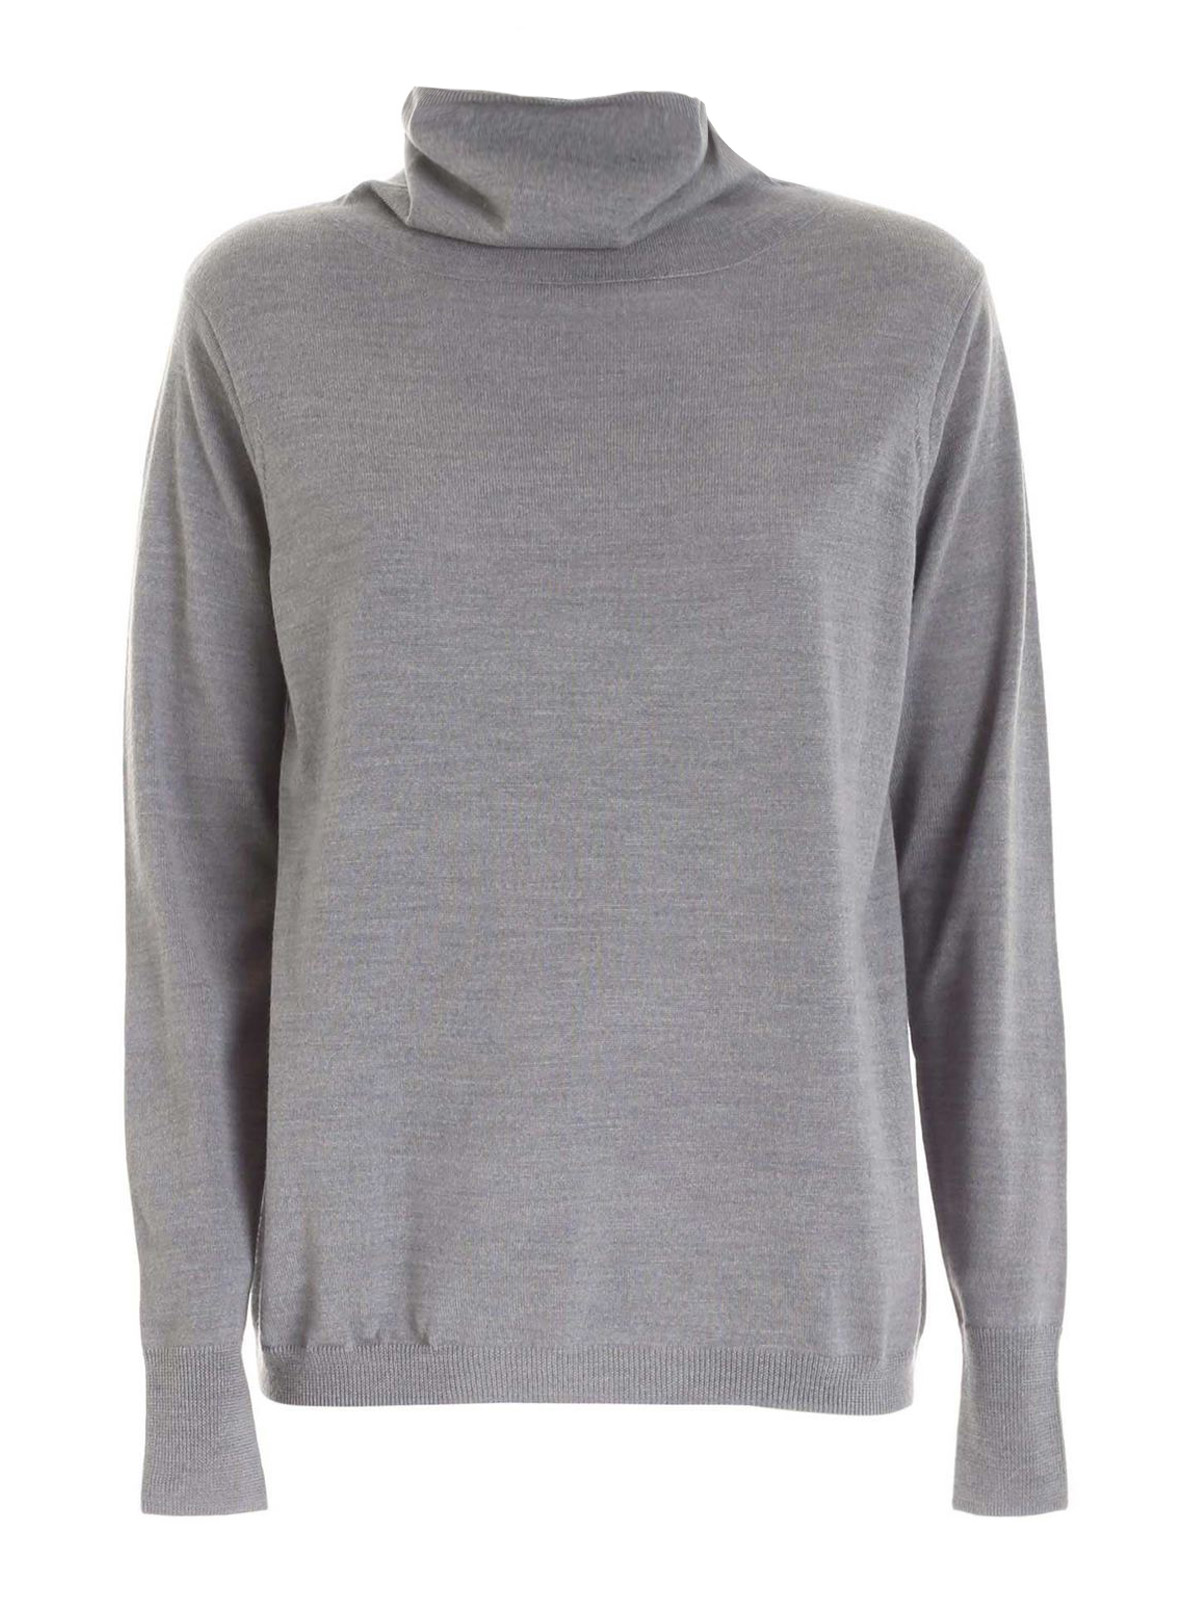 Aspesi WOOL TURTLENECK IN GREY